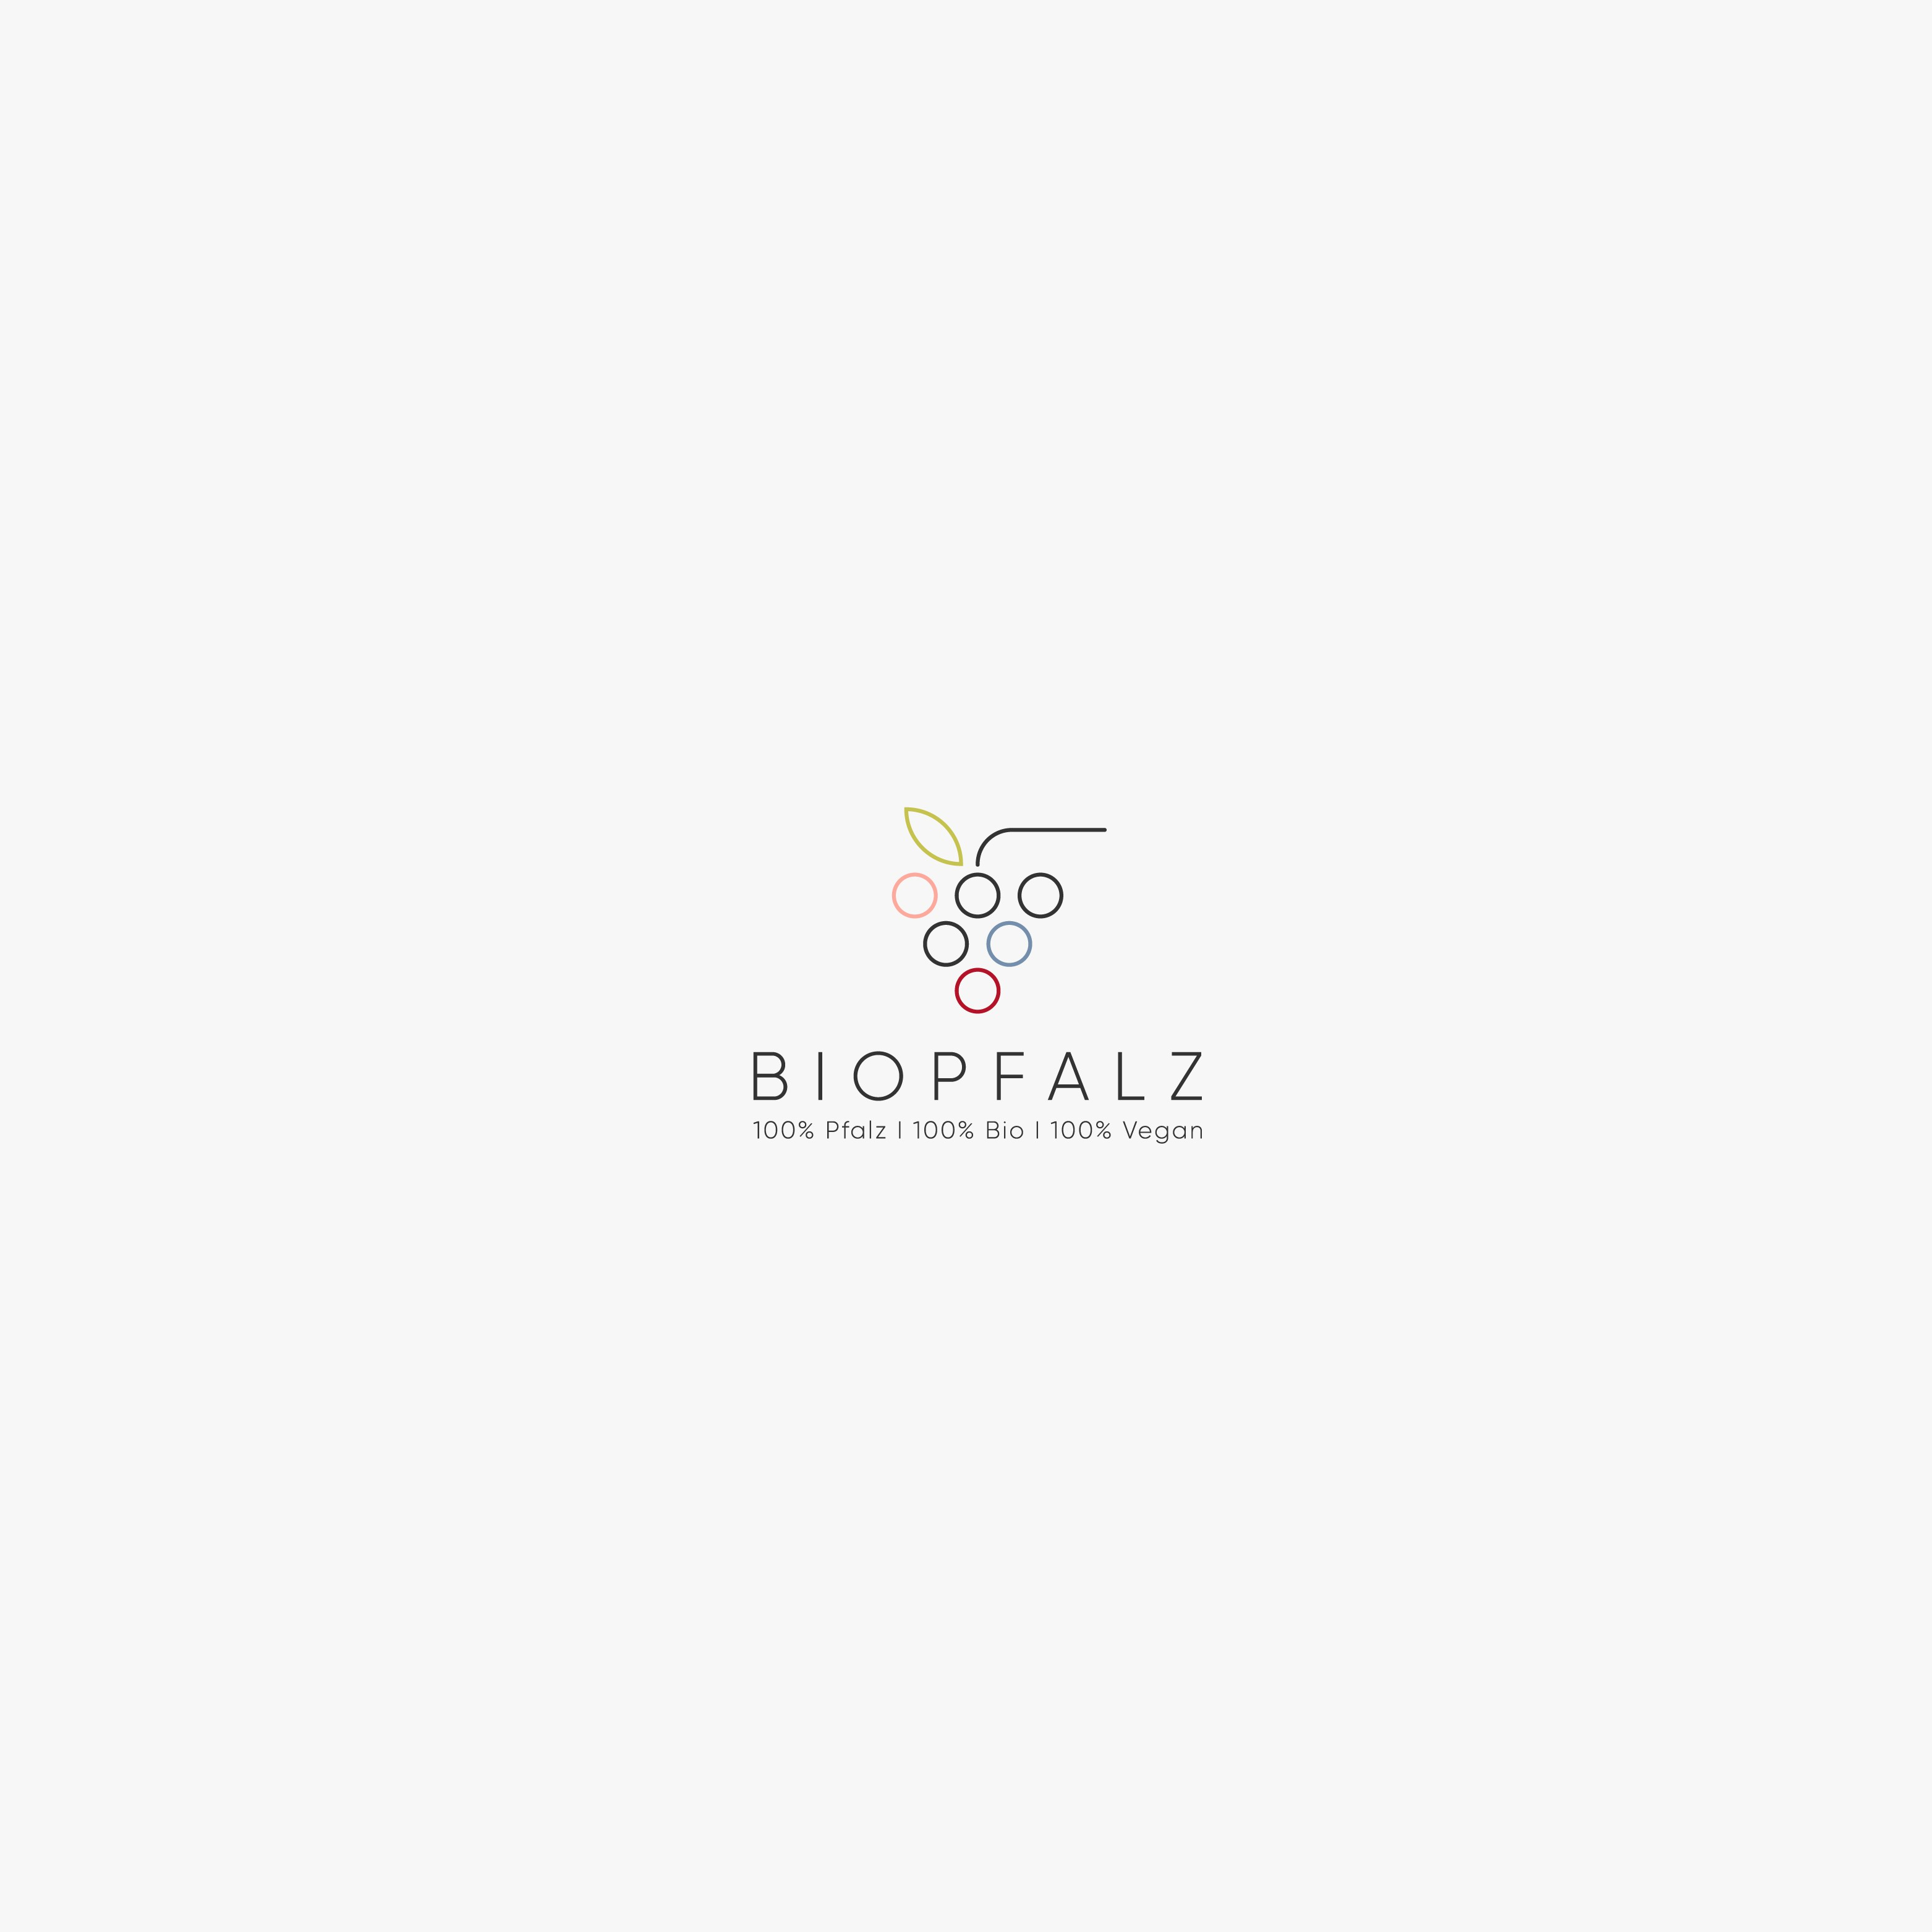 "The new wine onlineshop ""Biopfalz"" needs a logo. We sell only organic and vegan wine."